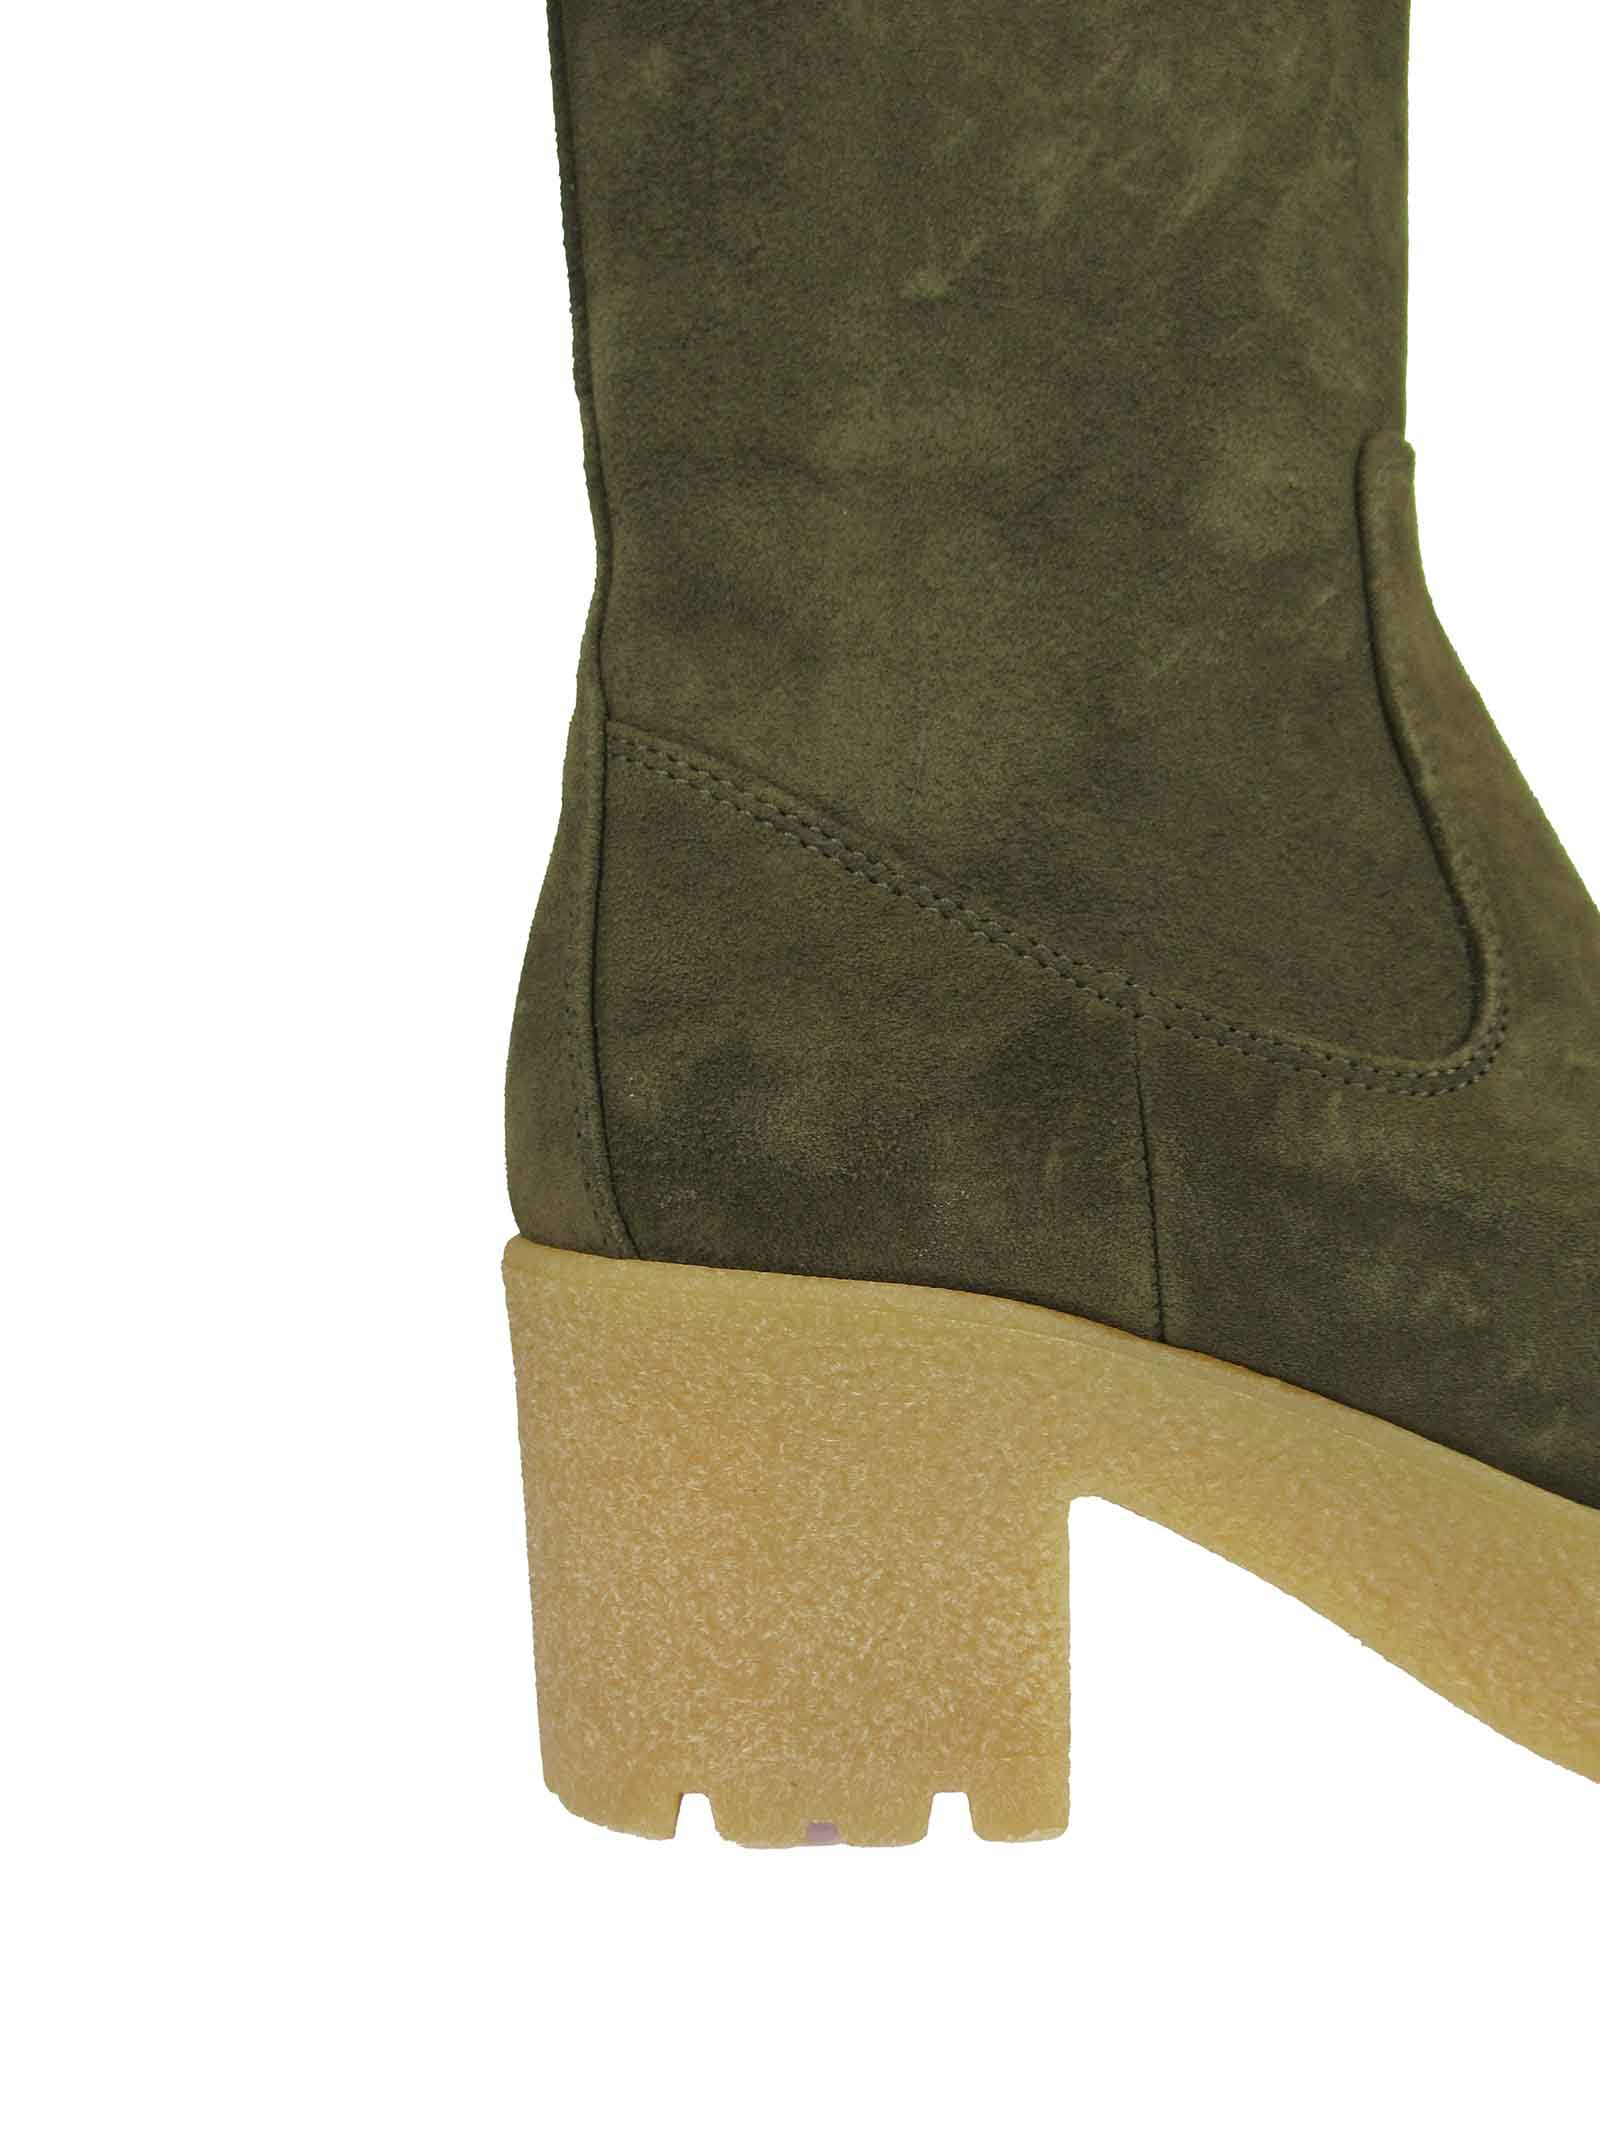 Women's Shoes Ankle Boots in Green Suede with High Para Wedge and Side Zip Fastening Unisa | Ankle Boots | KRIPTO005